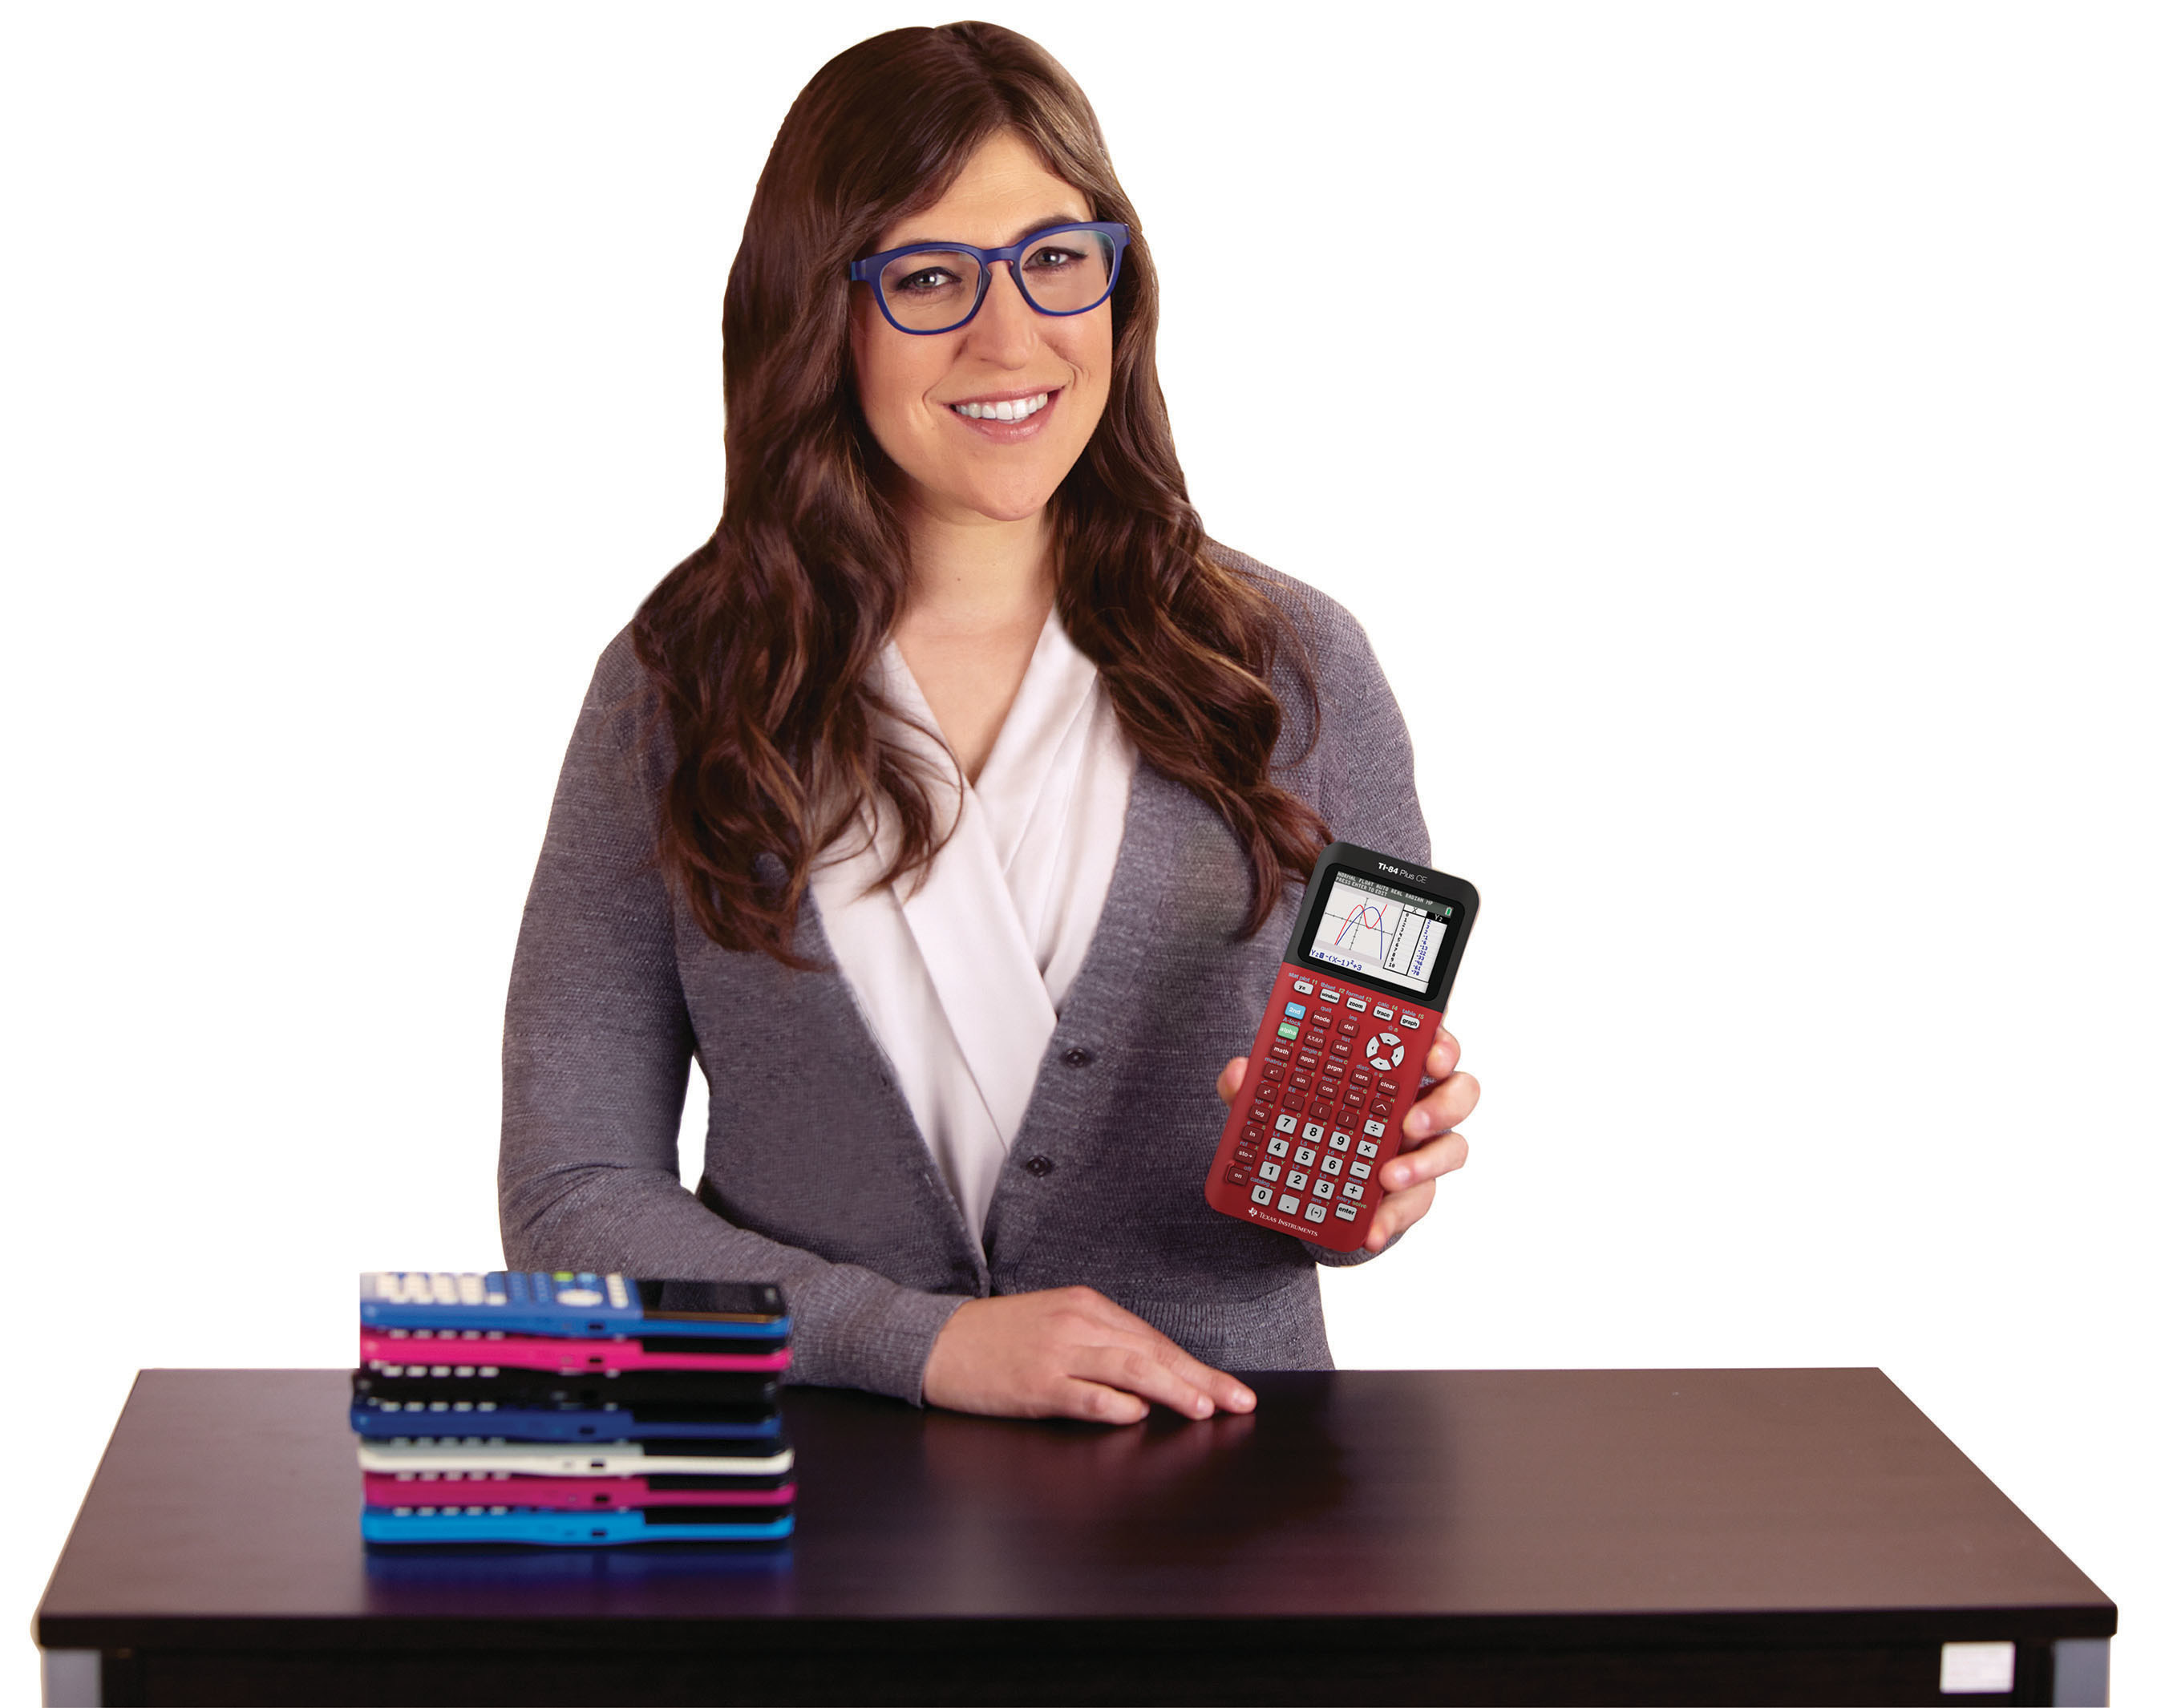 Bring Mayim Bialik back to school by showing your TI love. Share a photo or video with your TI calculator on Twitter or Instagram using #ilyTIcontest to win a classroom visit from Mayim and a class set of TI's newest graphing calculator, the TI-84 Plus CE.